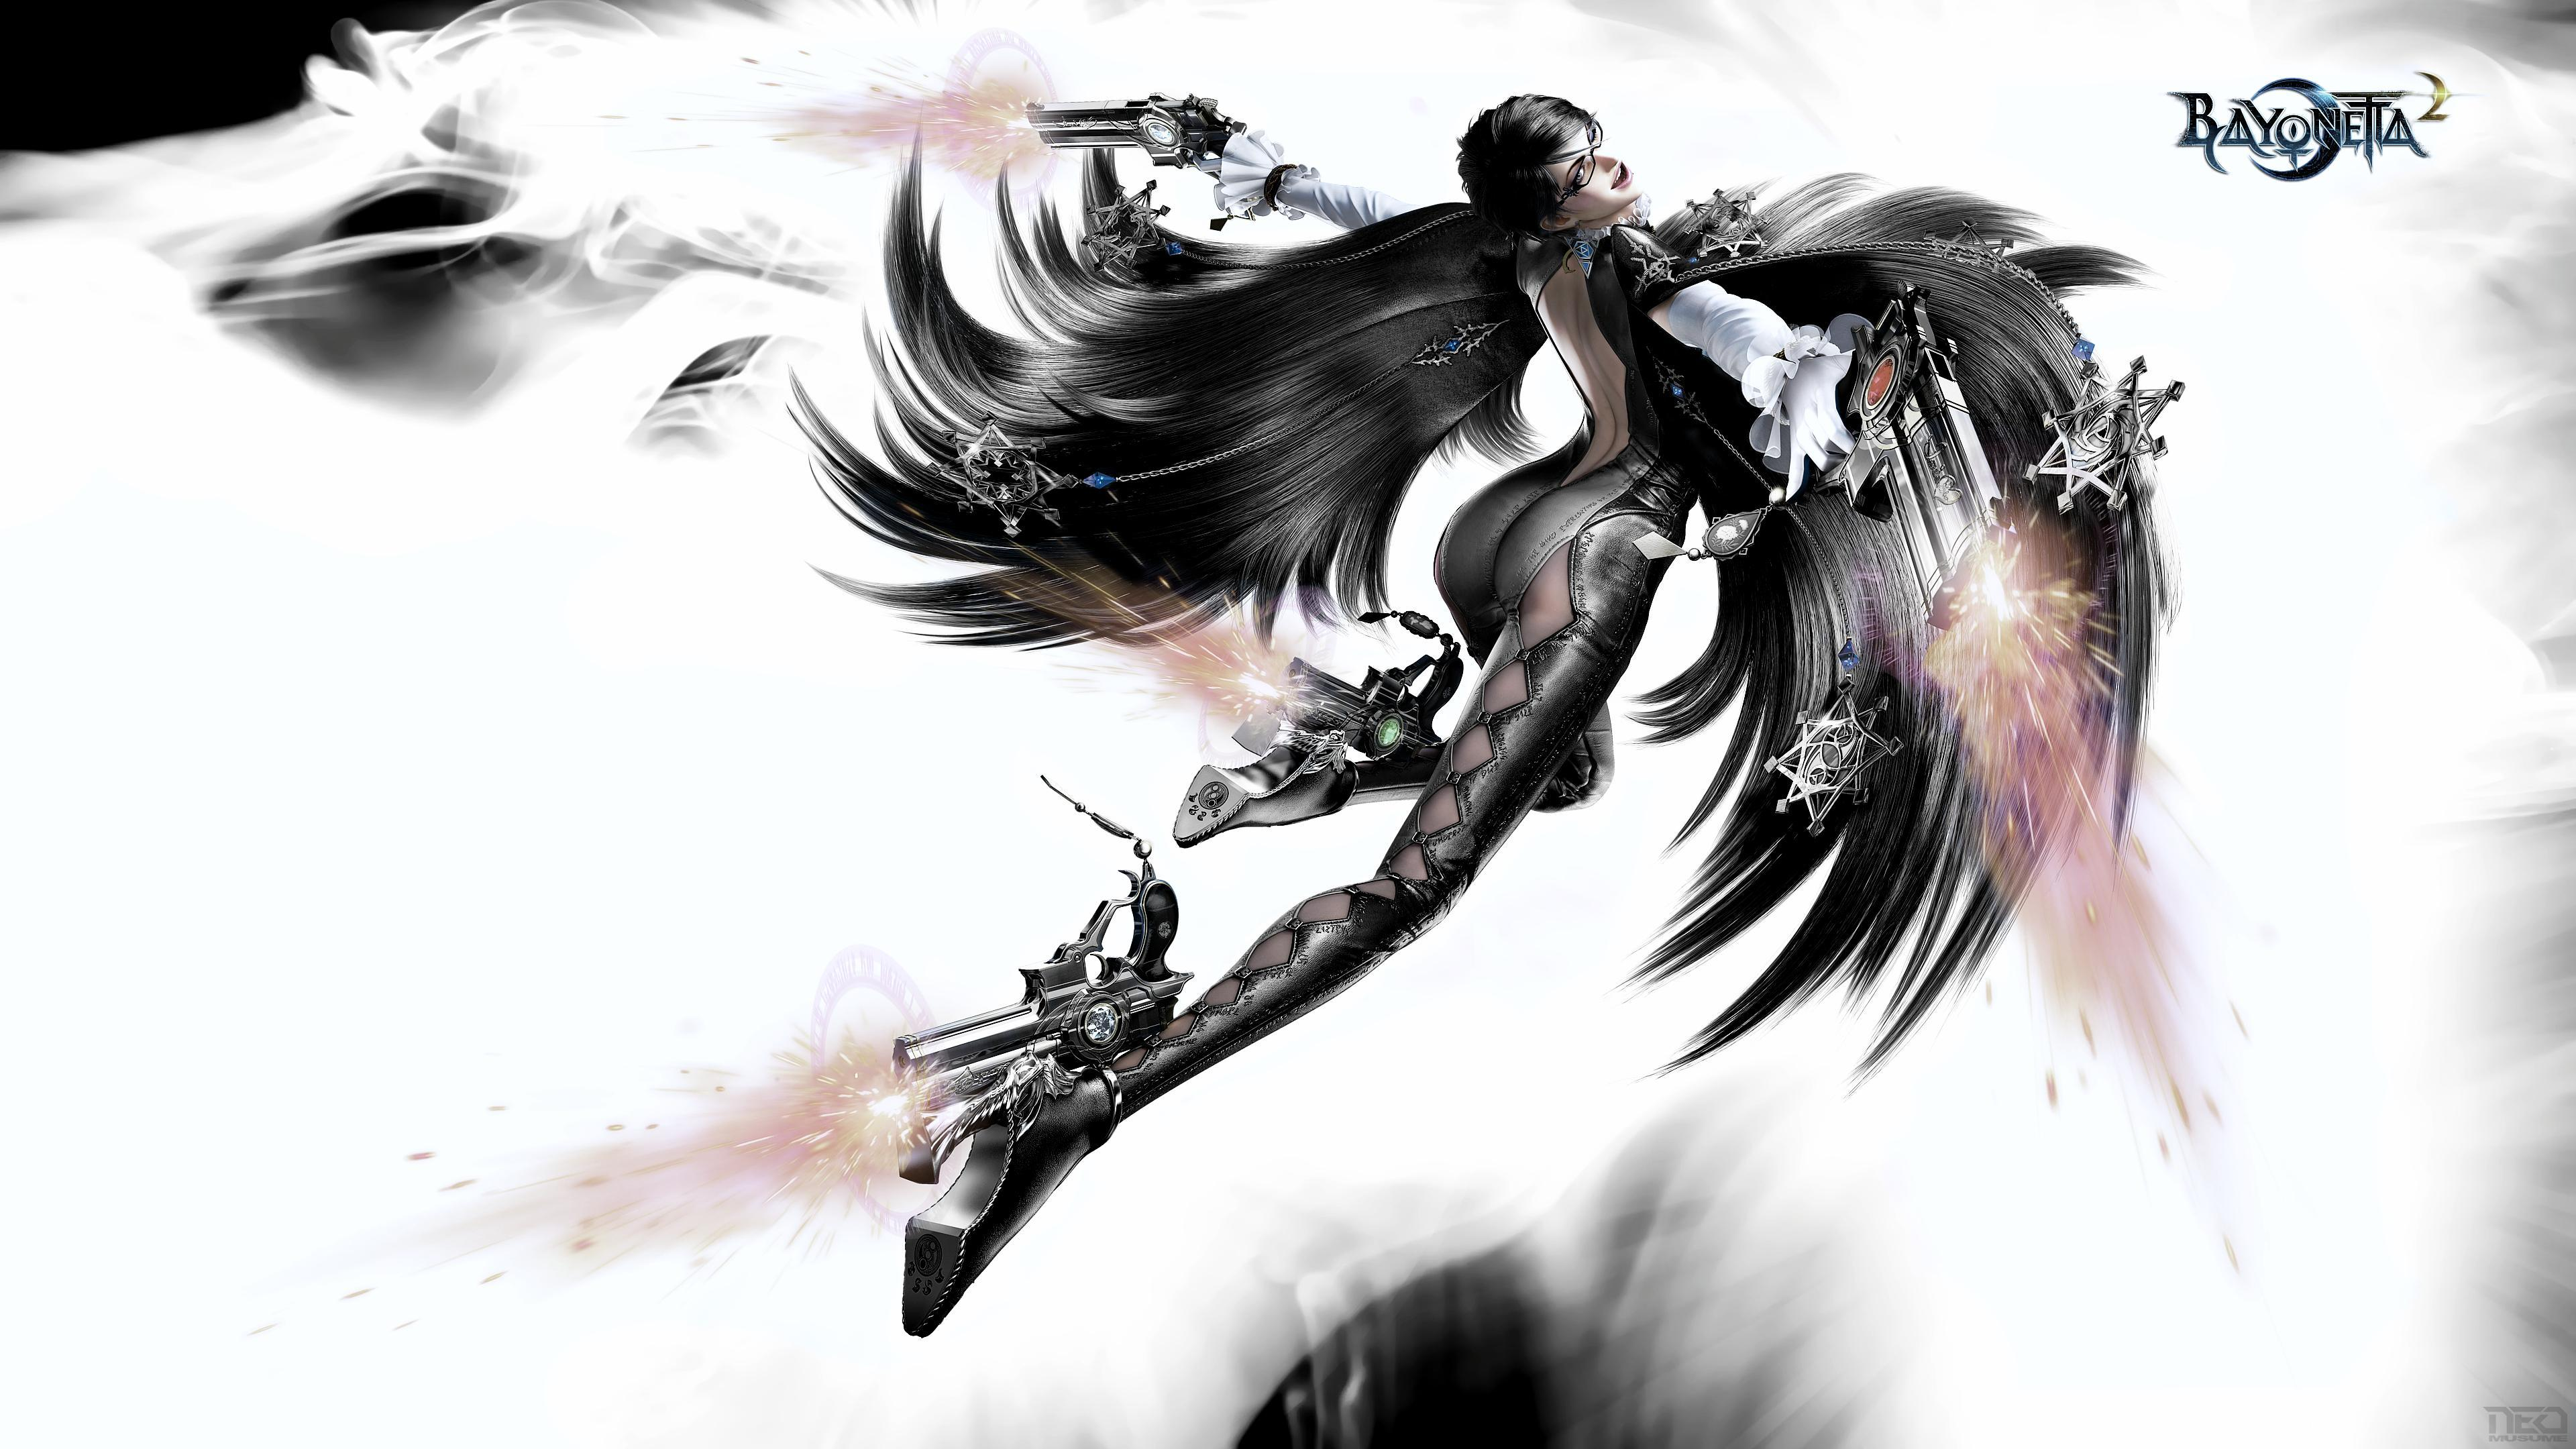 Bayonetta 2 Backgrounds 4K Download